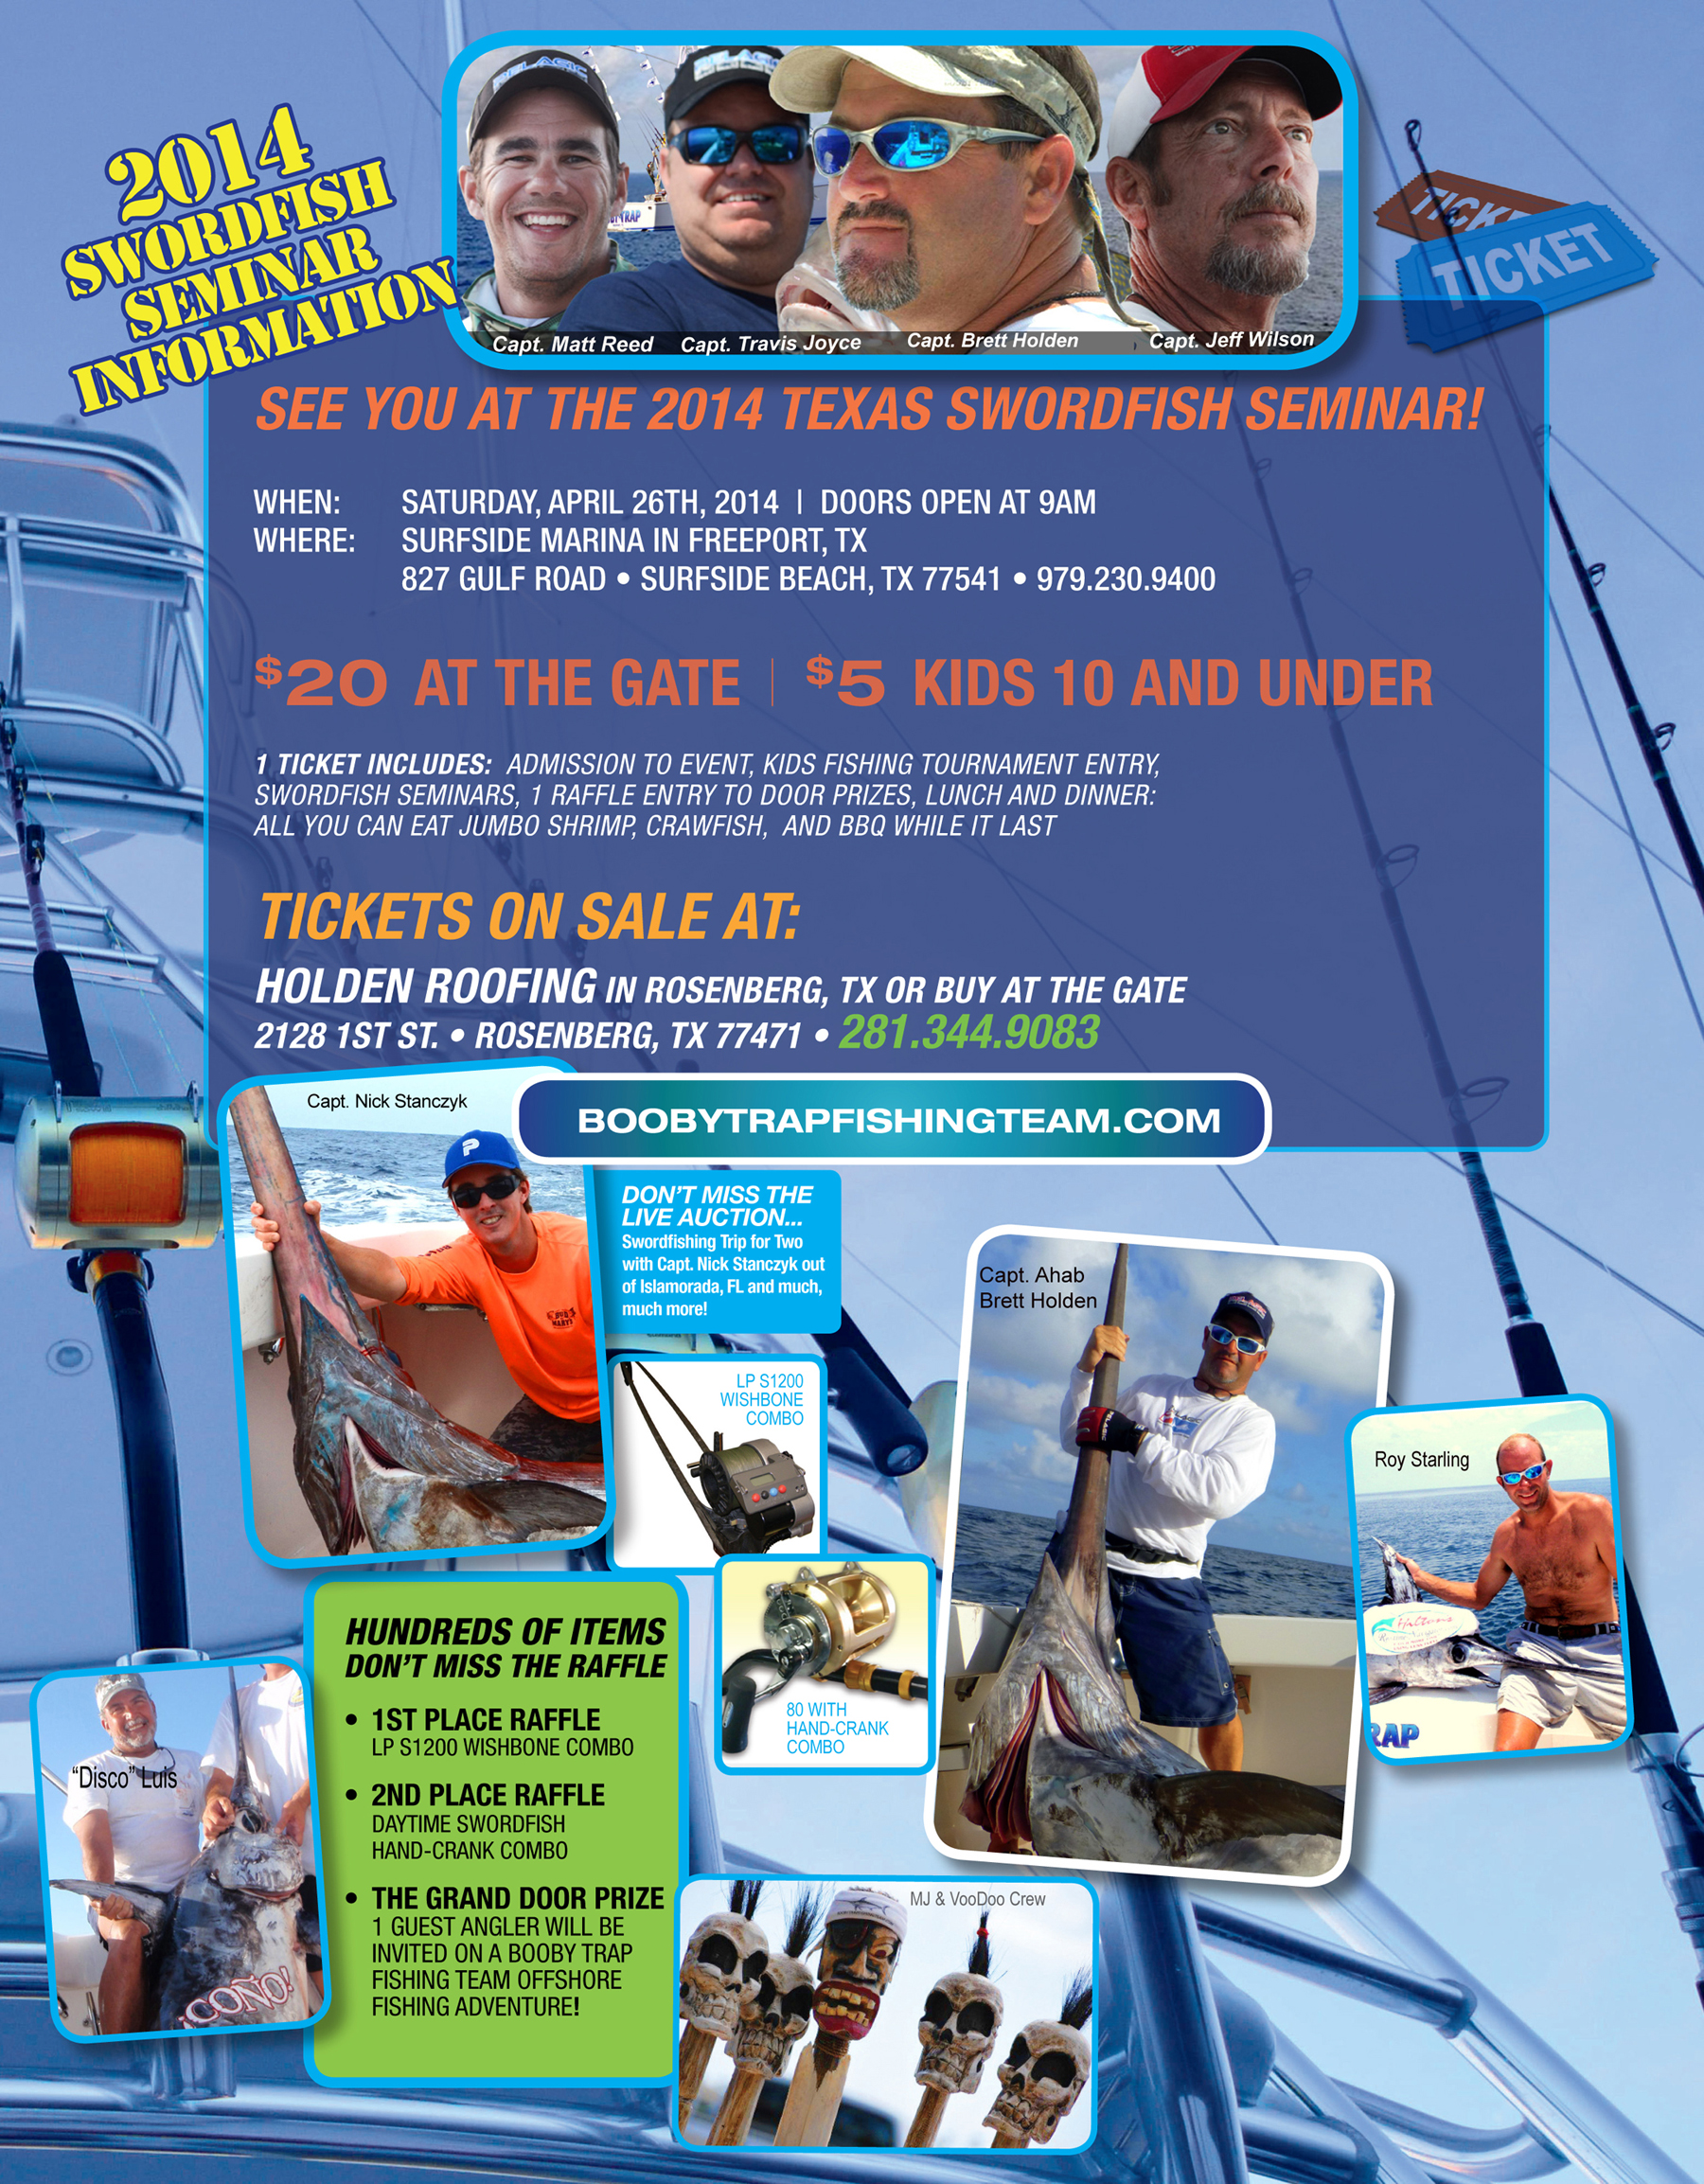 SWORDFISH SEMINAR TICKET INFORMATION